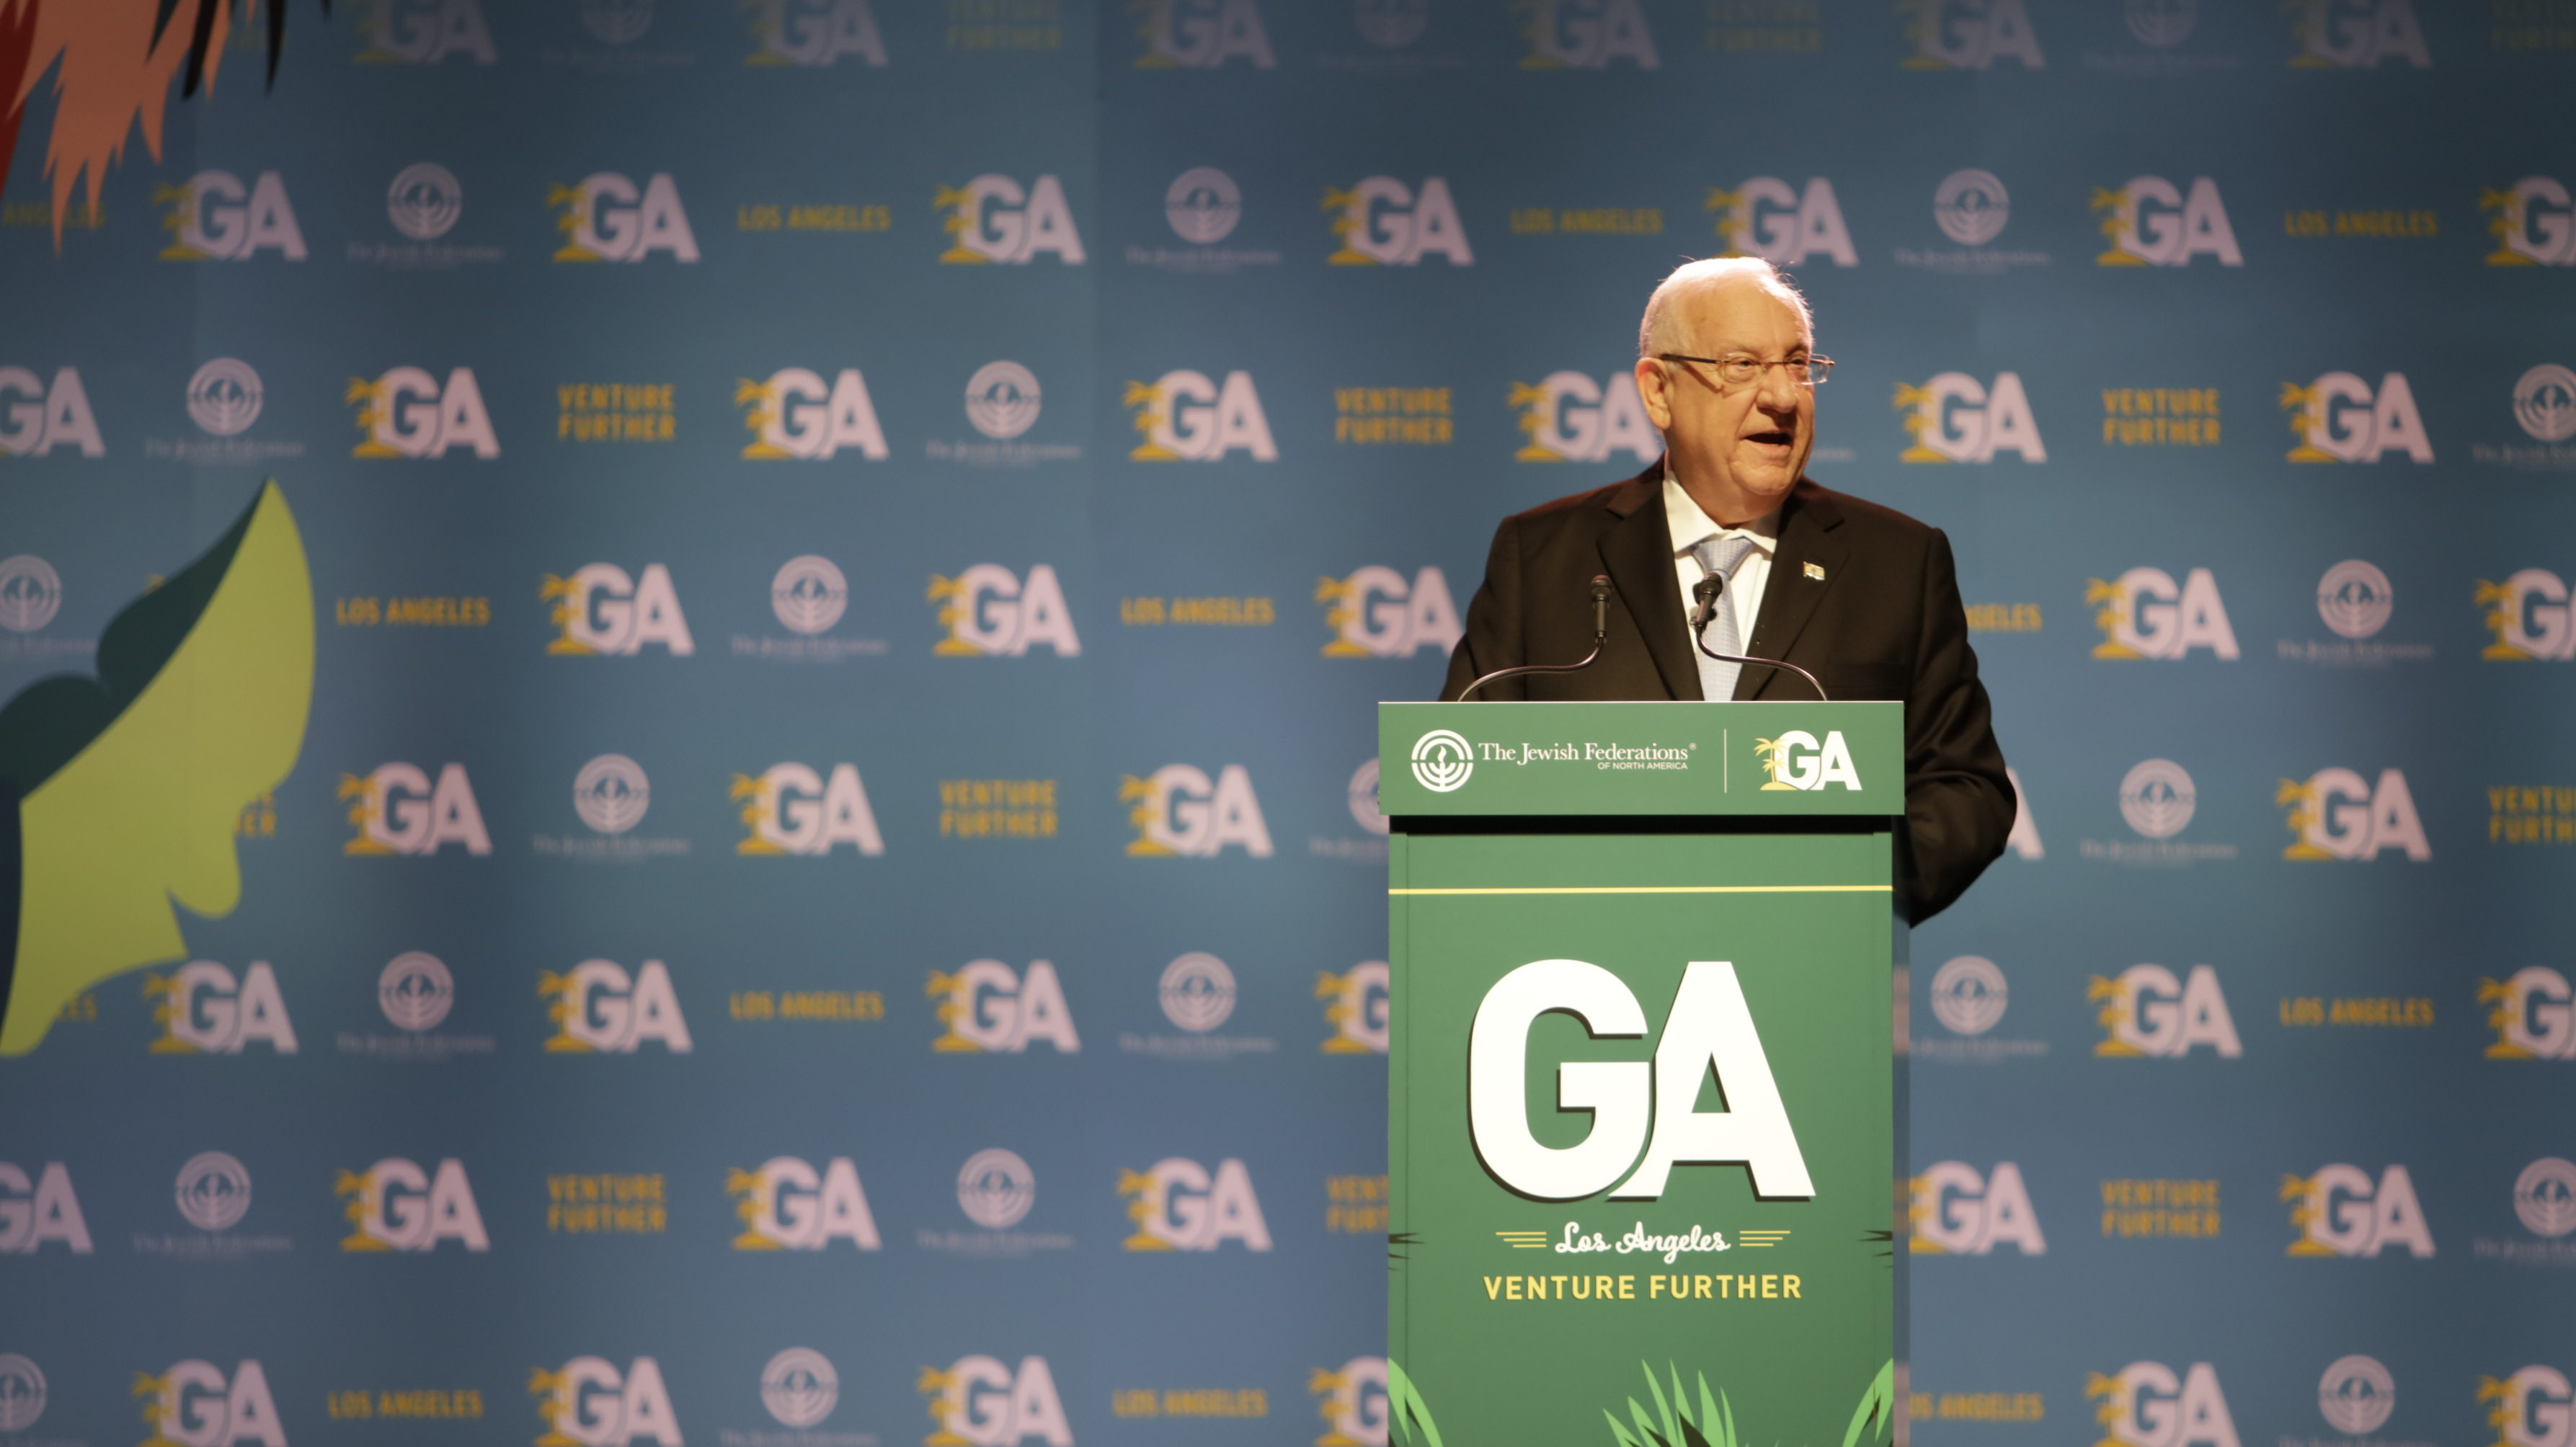 Israeli President Reuven Rivlin addresses the 2017 General Assembly of the Jewish Federations of North America in his first major talk to a Jewish audience outside Israel (Photo/Jeffrey Brown-JFNA)